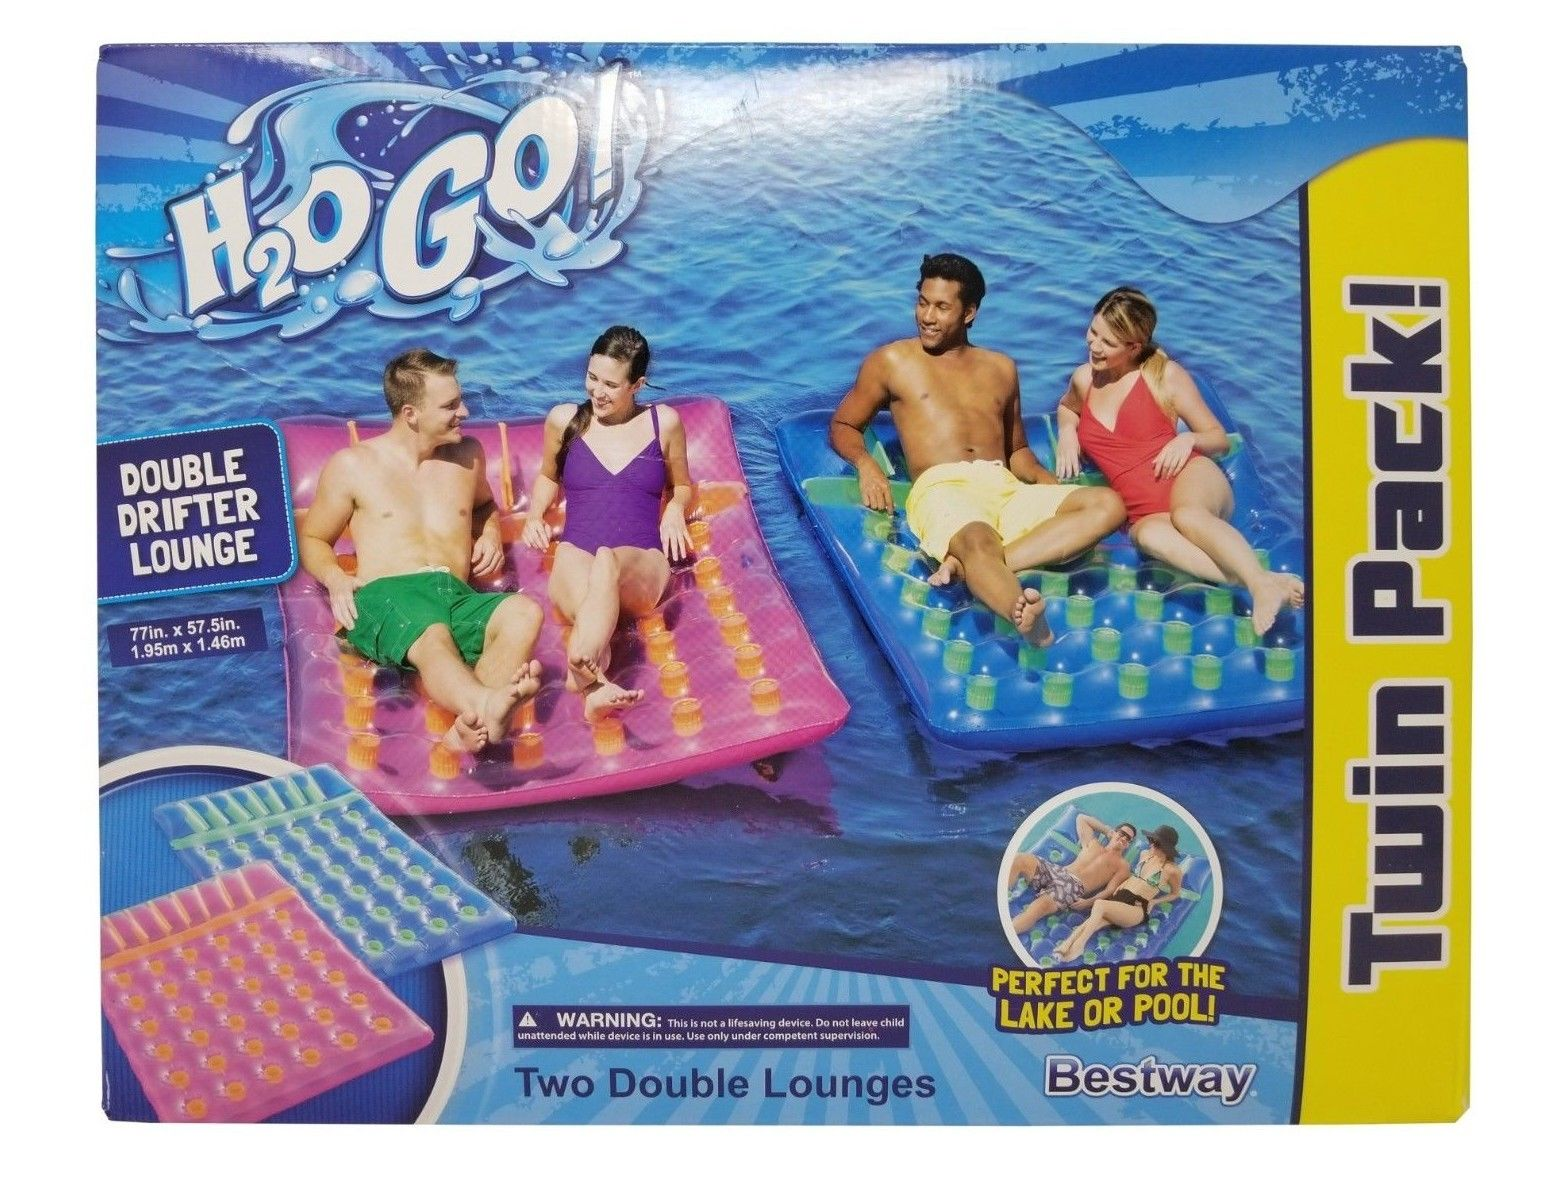 Bestway H2O Go! Double Drifter Lounges 77 x 57.5 inches - Twin Pack